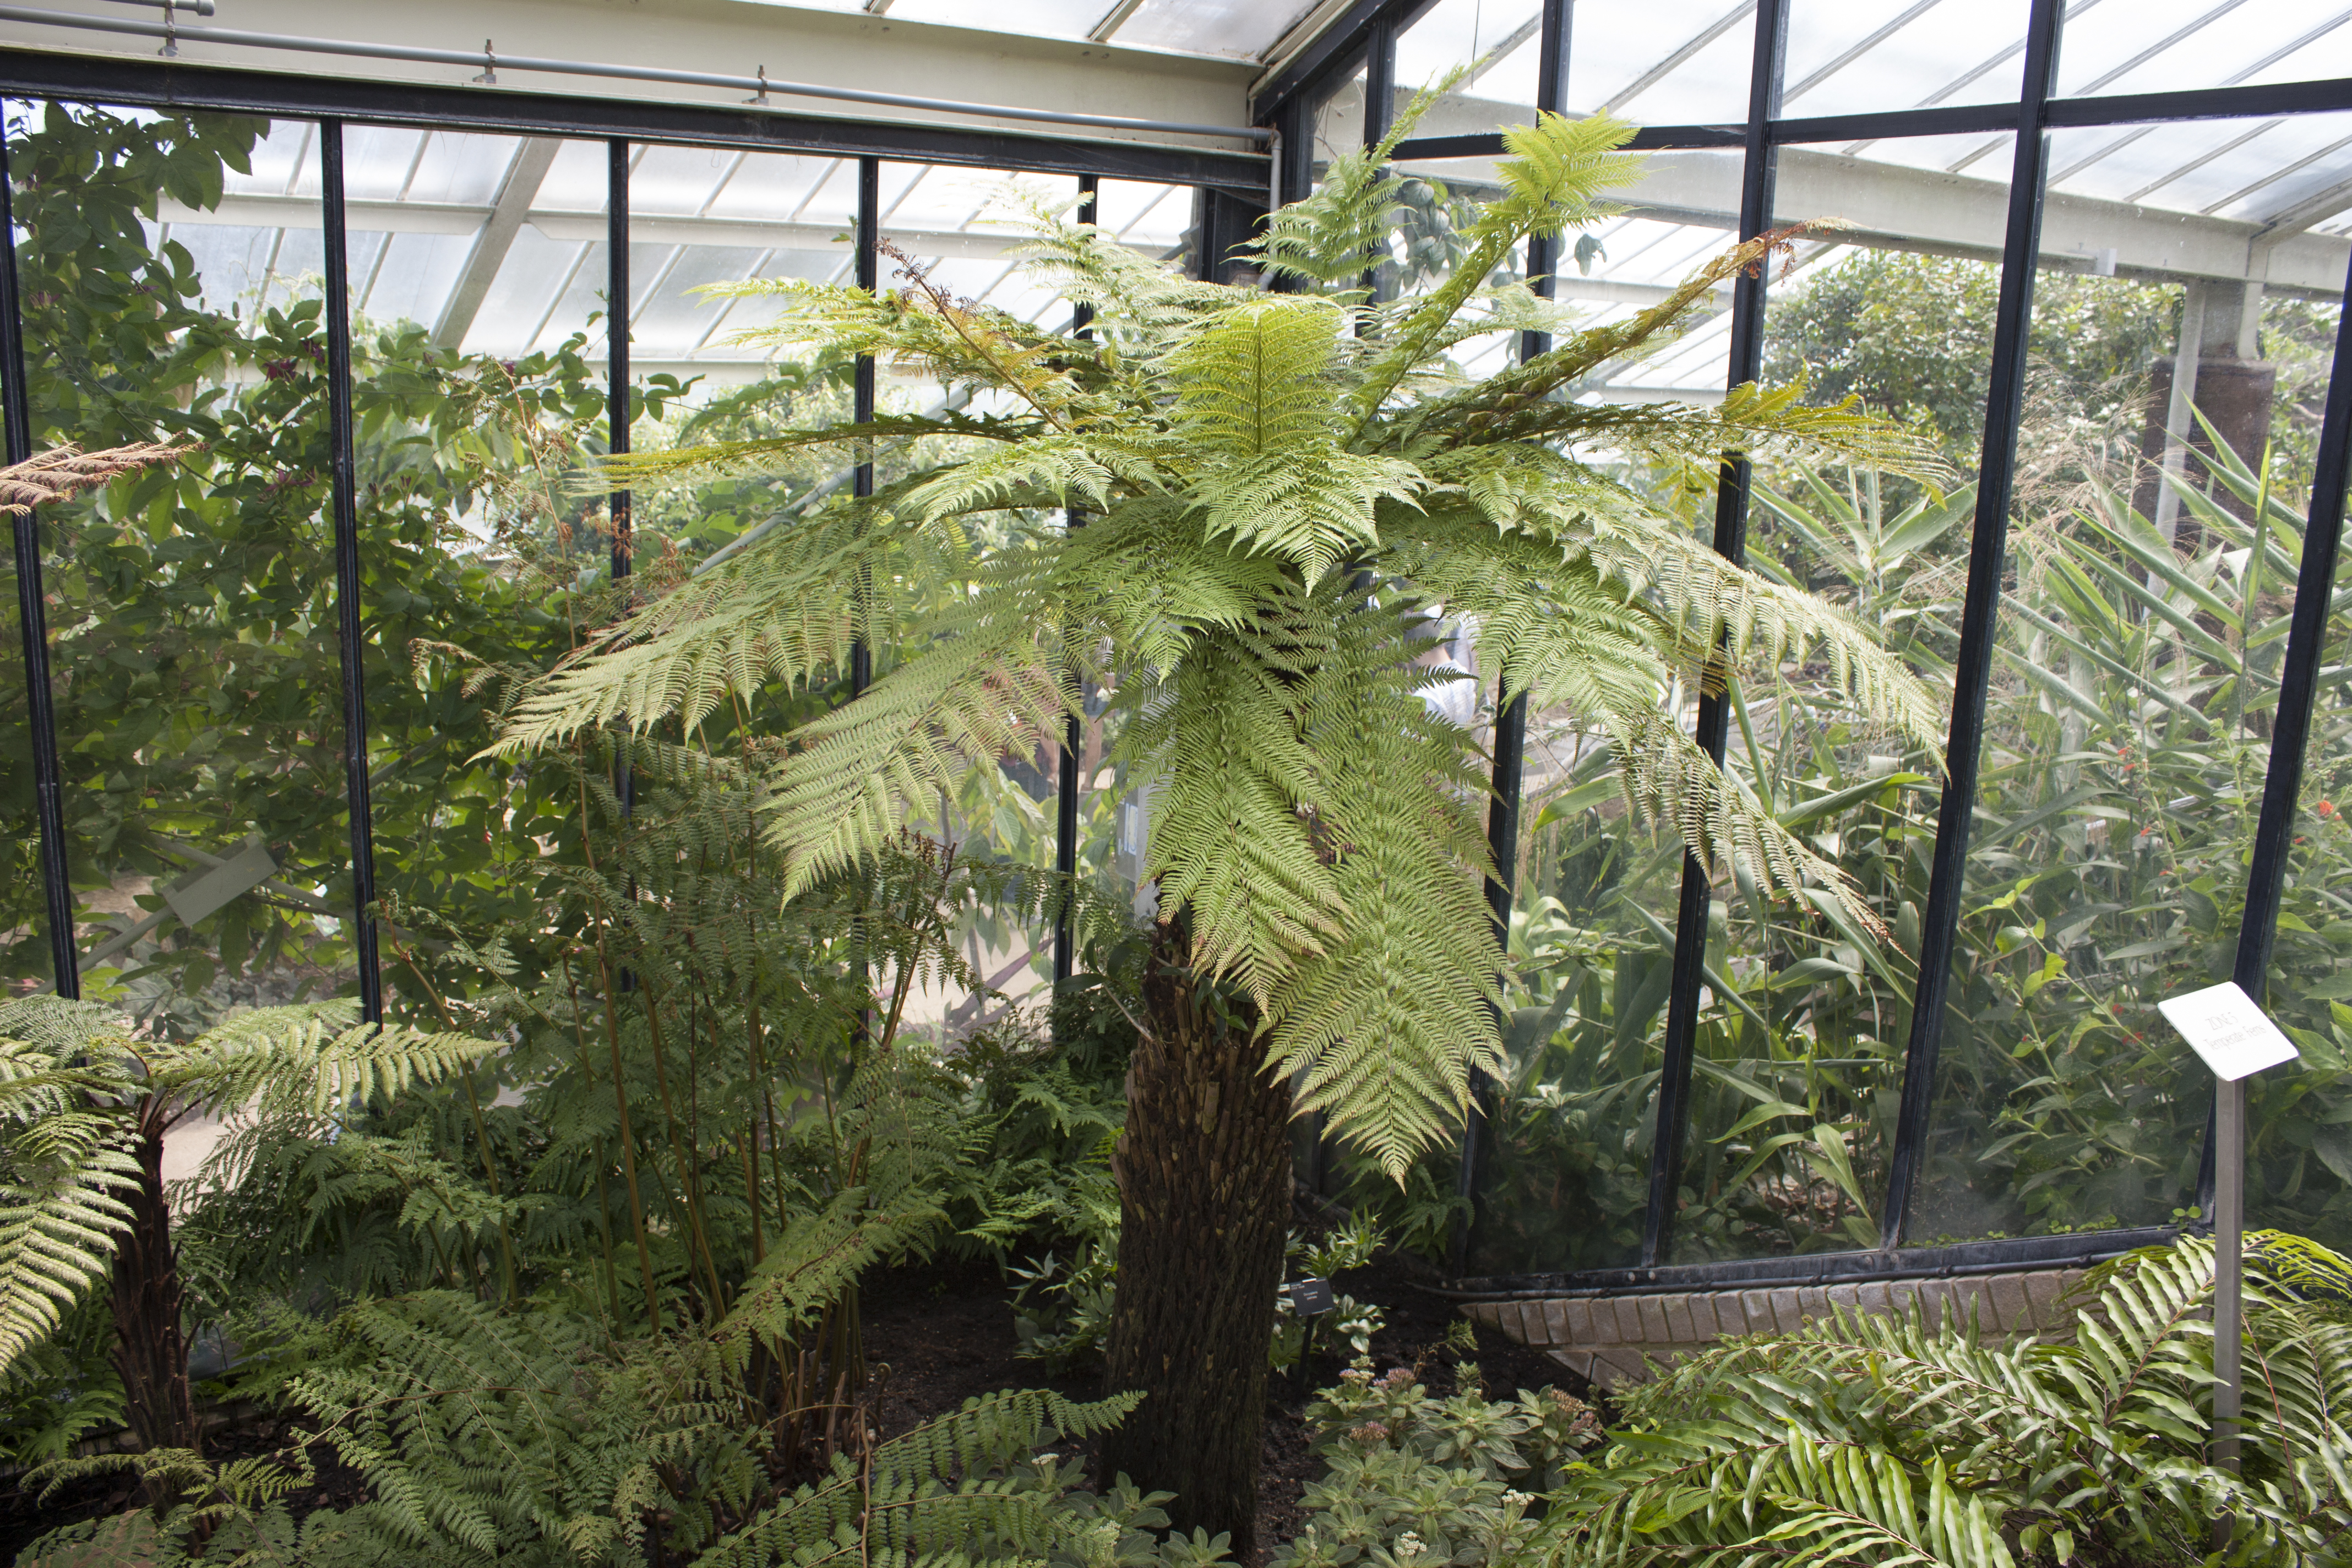 Princess of wales conservatory flickr photo sharing for 32 princess of wales terrace